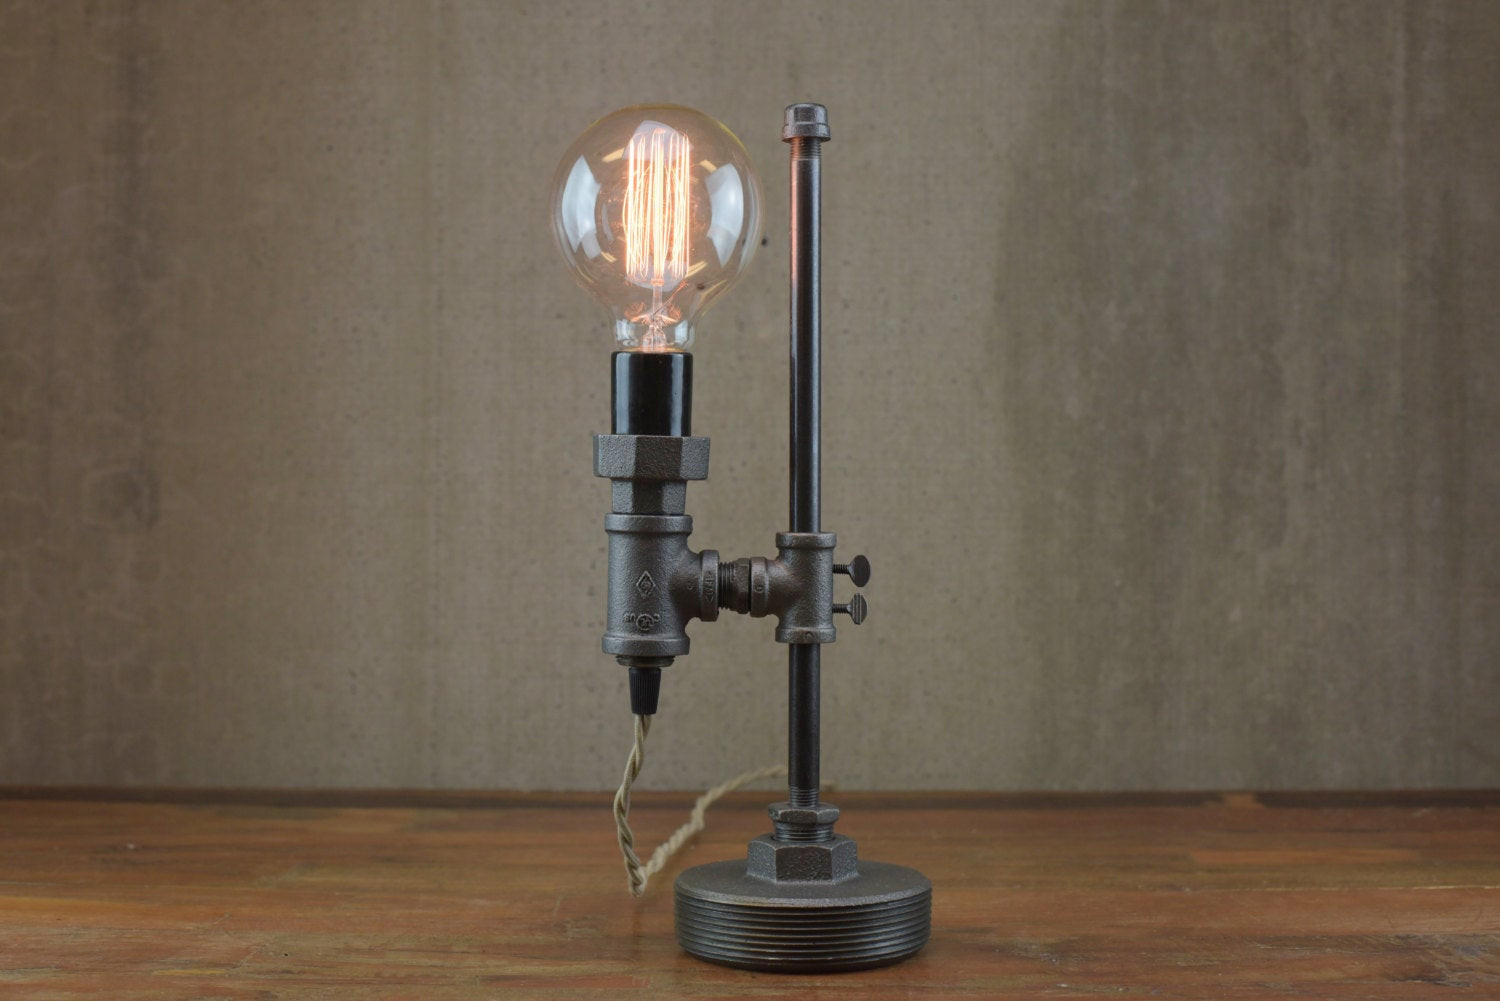 Best ideas about Industrial Desk Lamp . Save or Pin Minimalist Lamp Industrial Desk Lamp Edison Bulb Light Now.